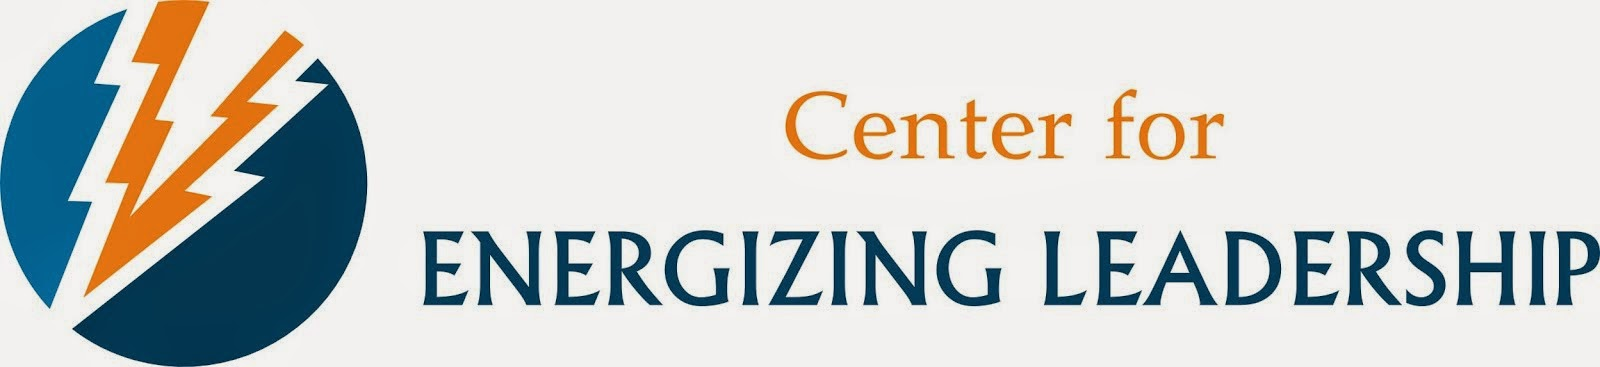 Center for Energizing Leadership